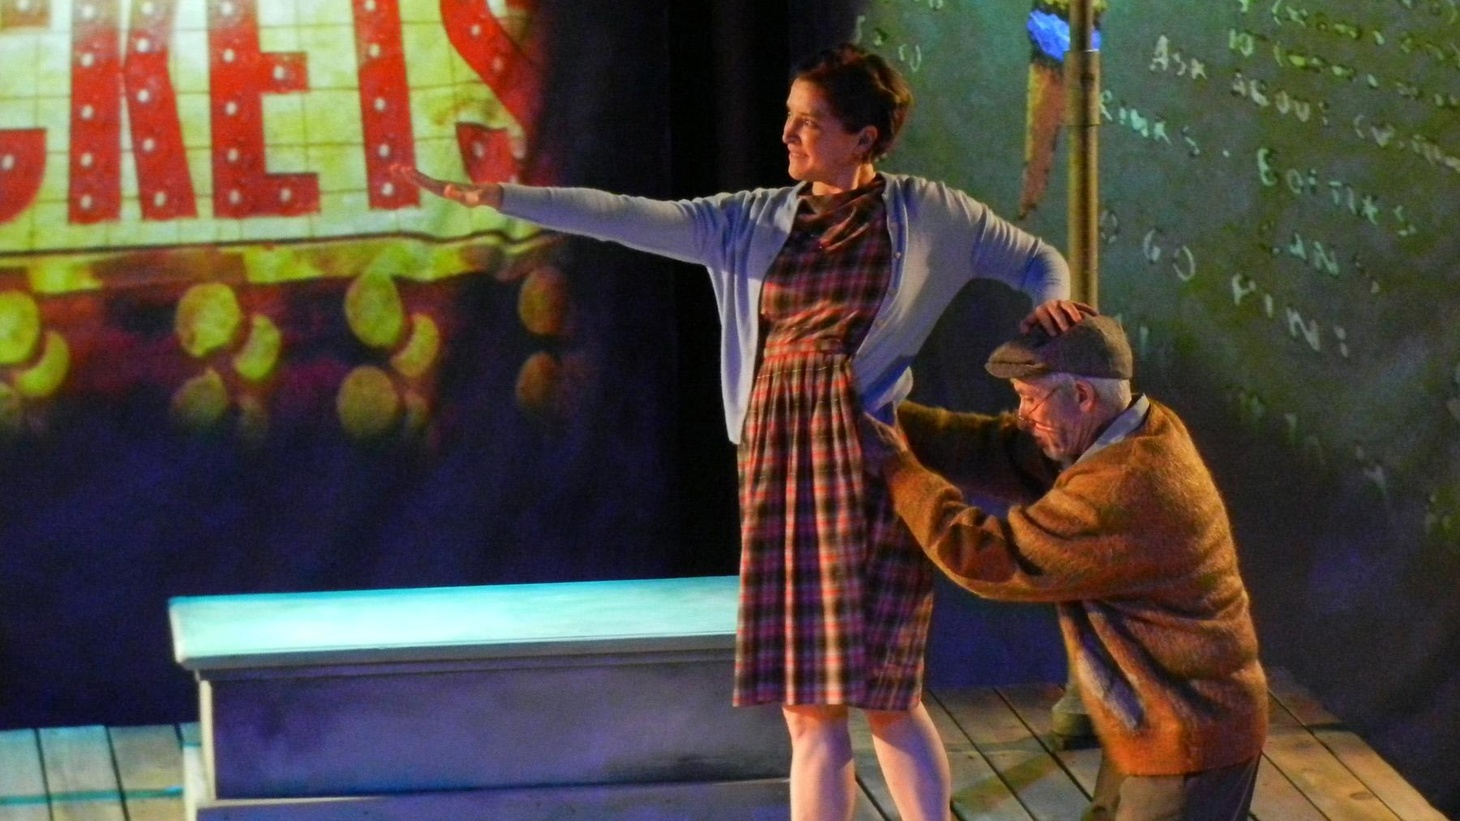 """While death is the catalyst for the play, at its heart """"Walking a Tightrope"""" is sweet tale of a grandfather trying his best and a little girl growing up."""